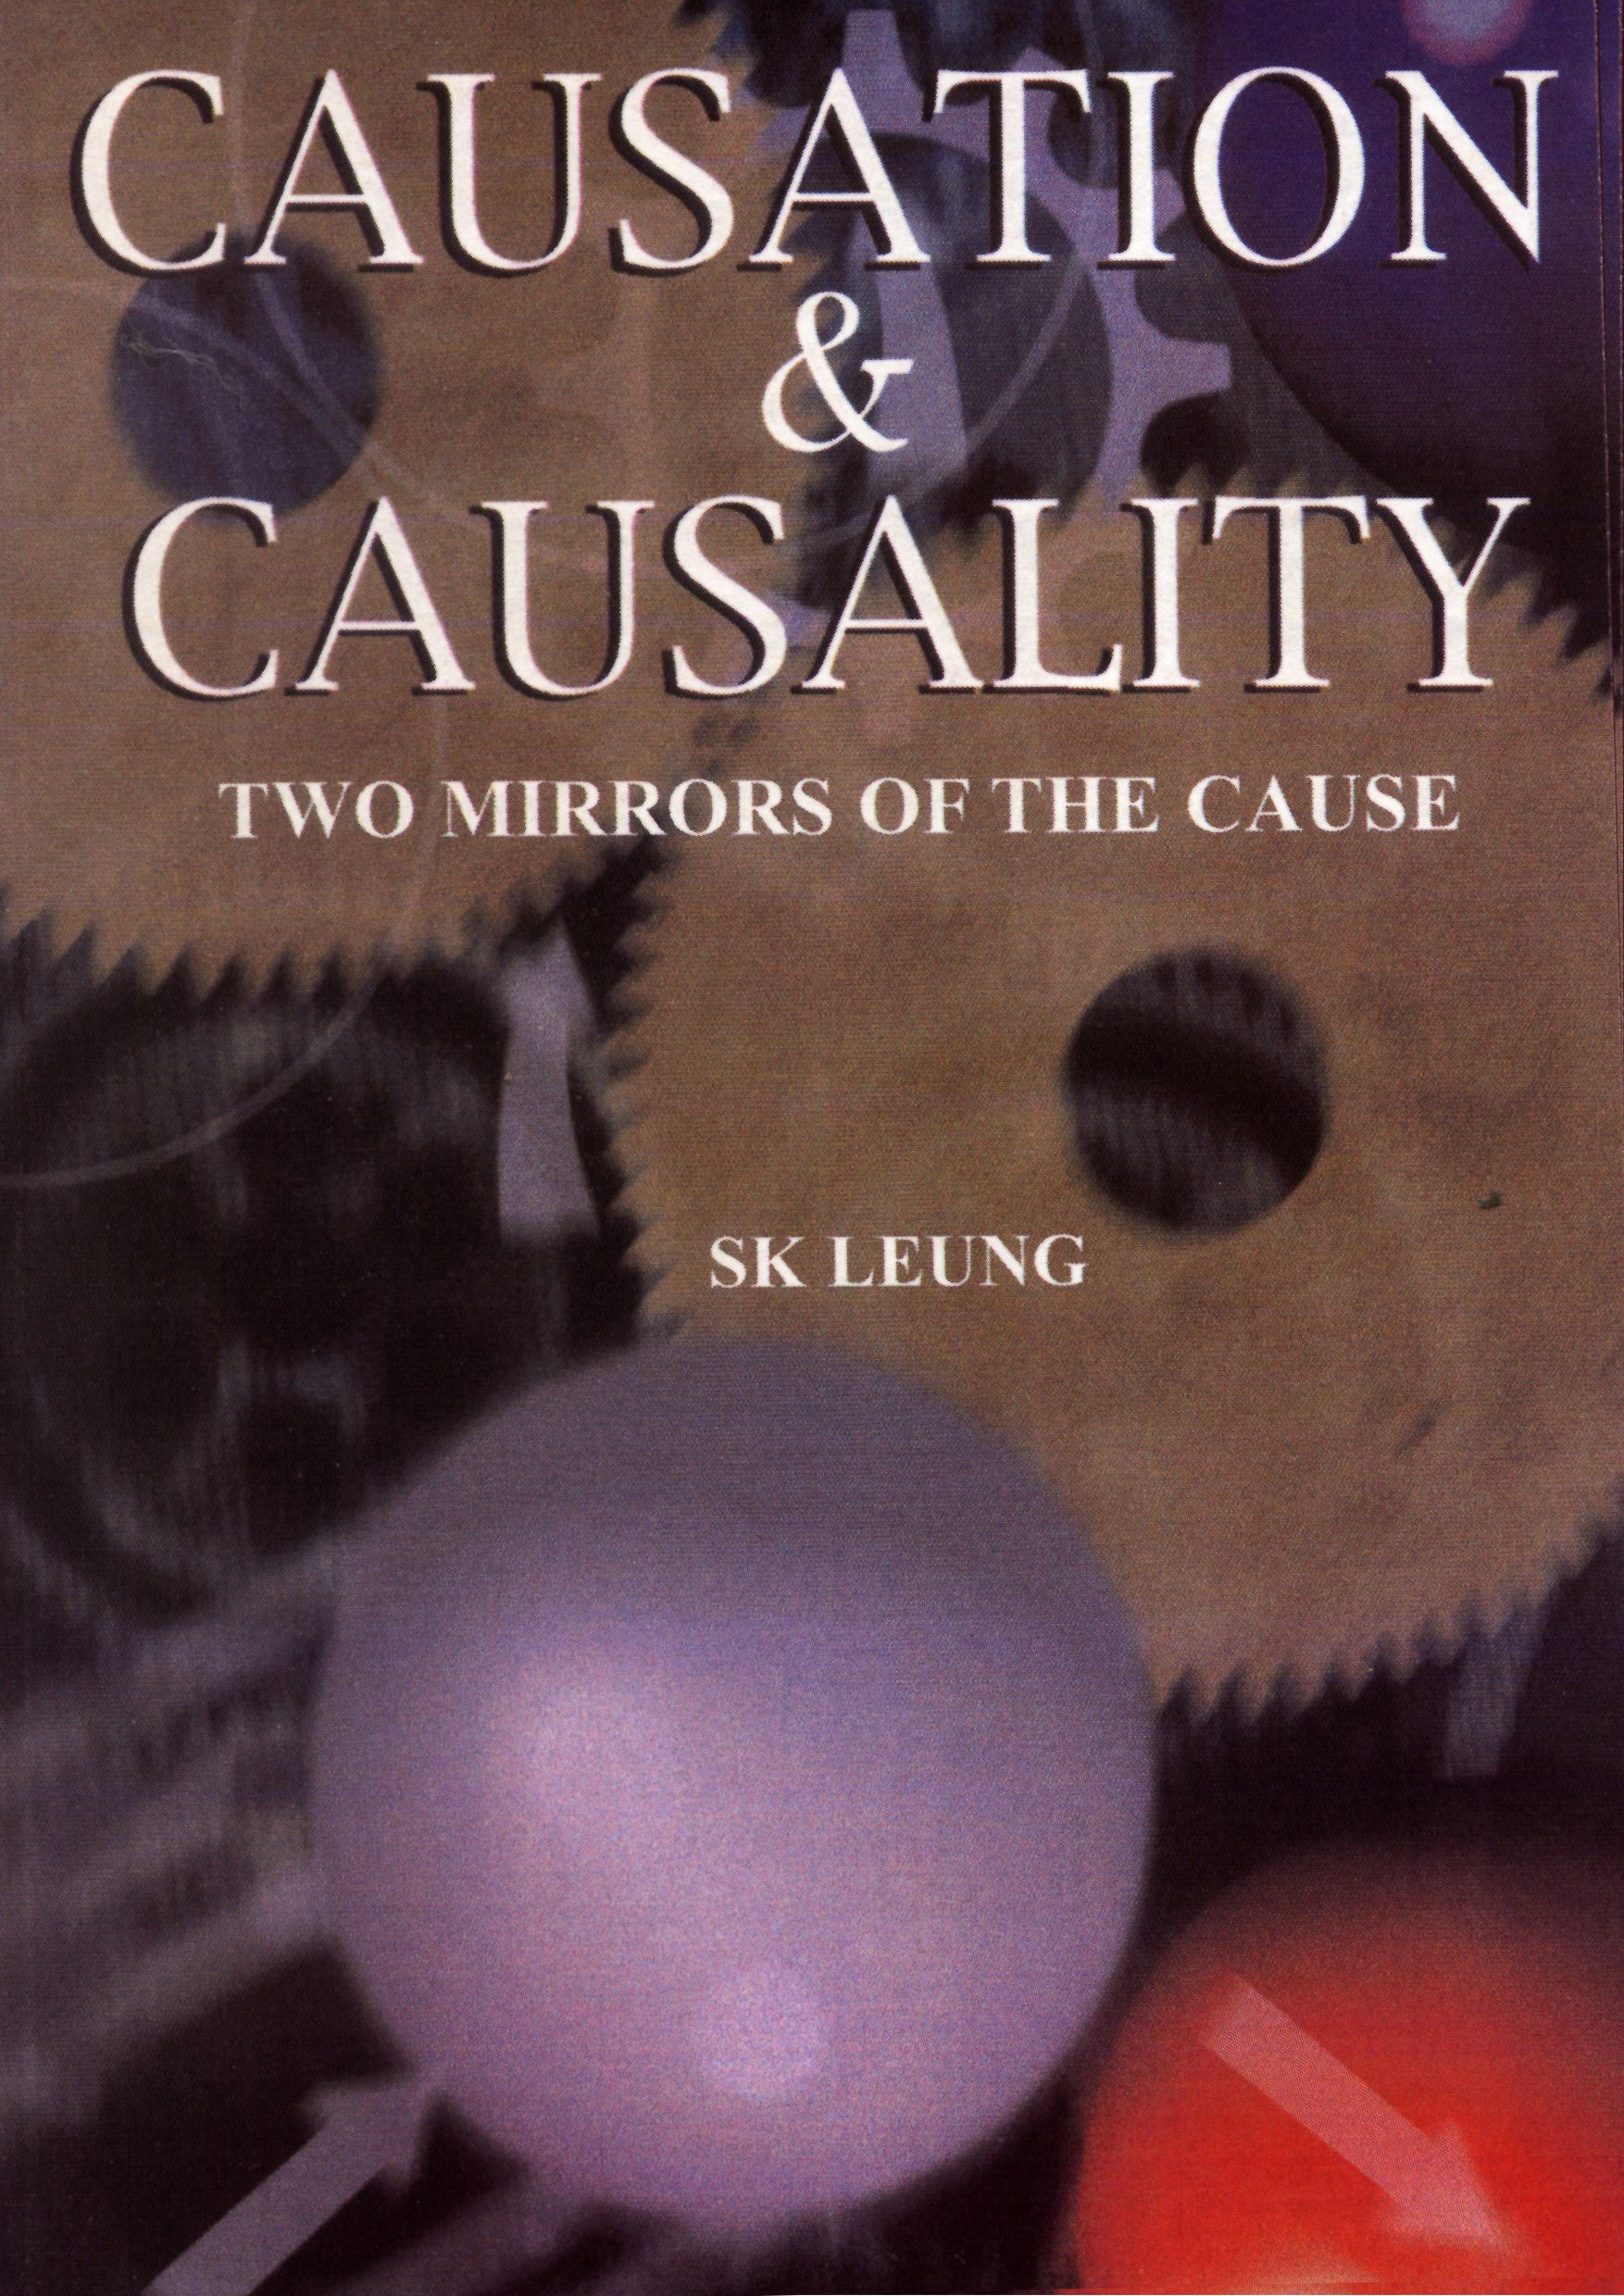 Causation & Causality